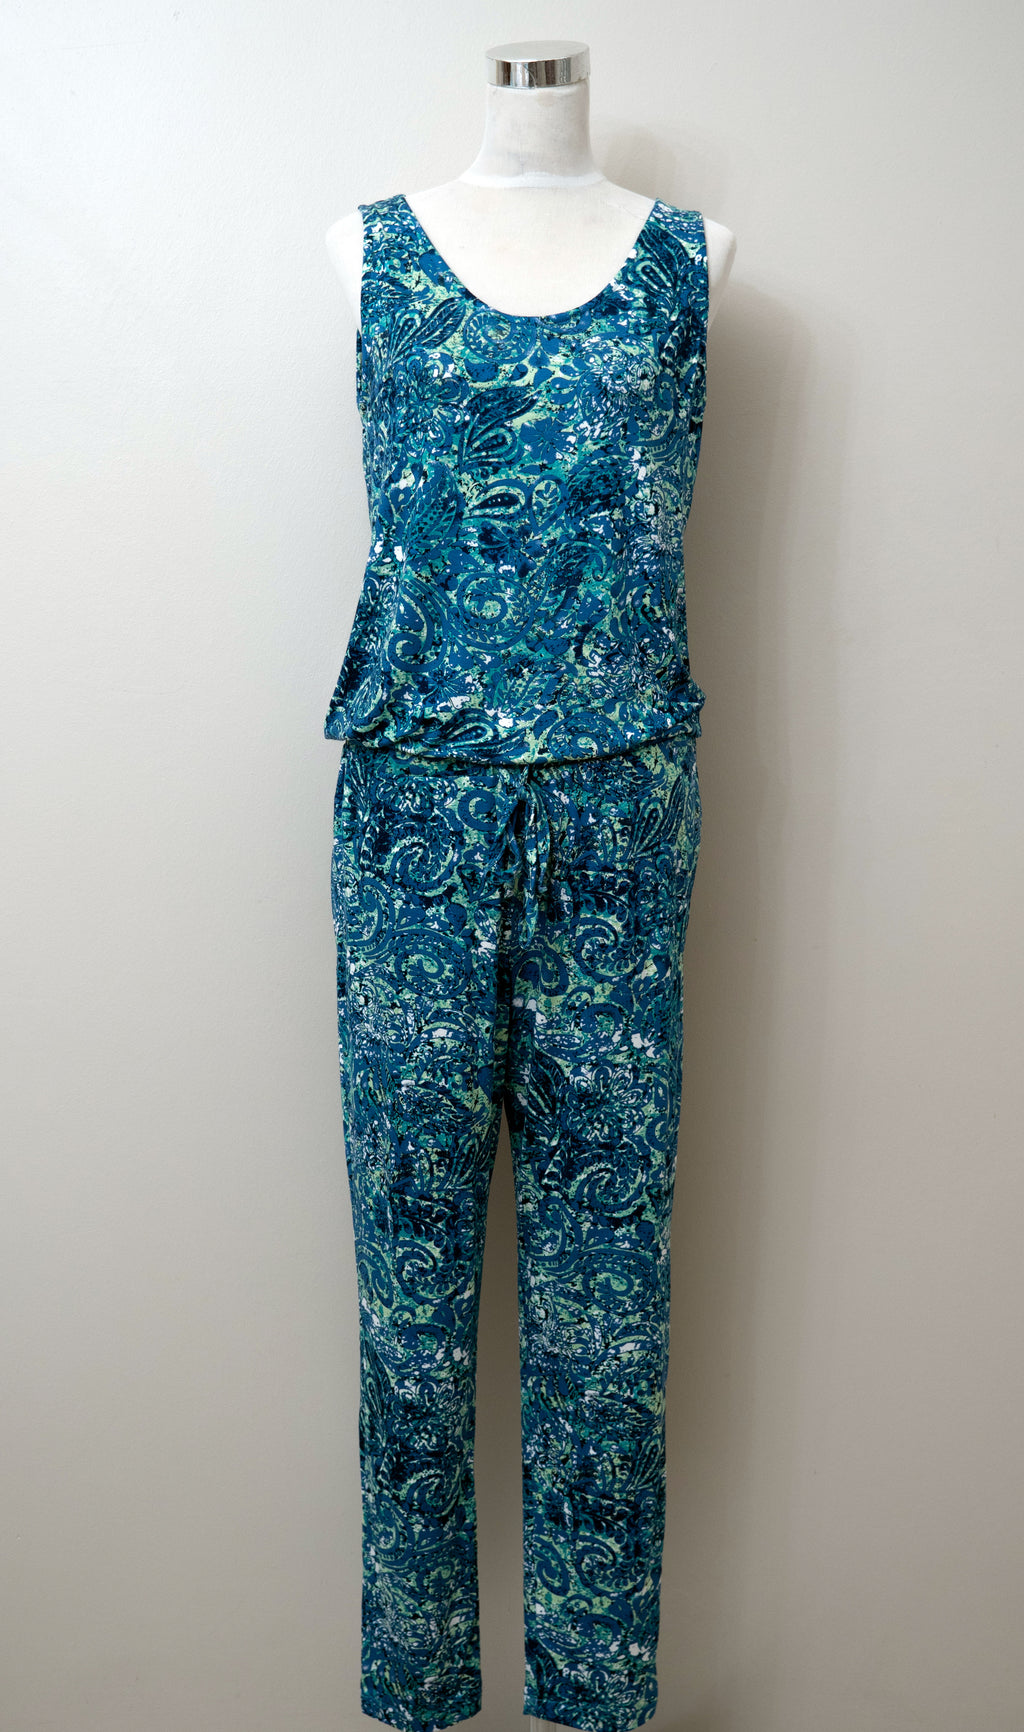 Molly Jumpsuit Jumpsuit - green floral